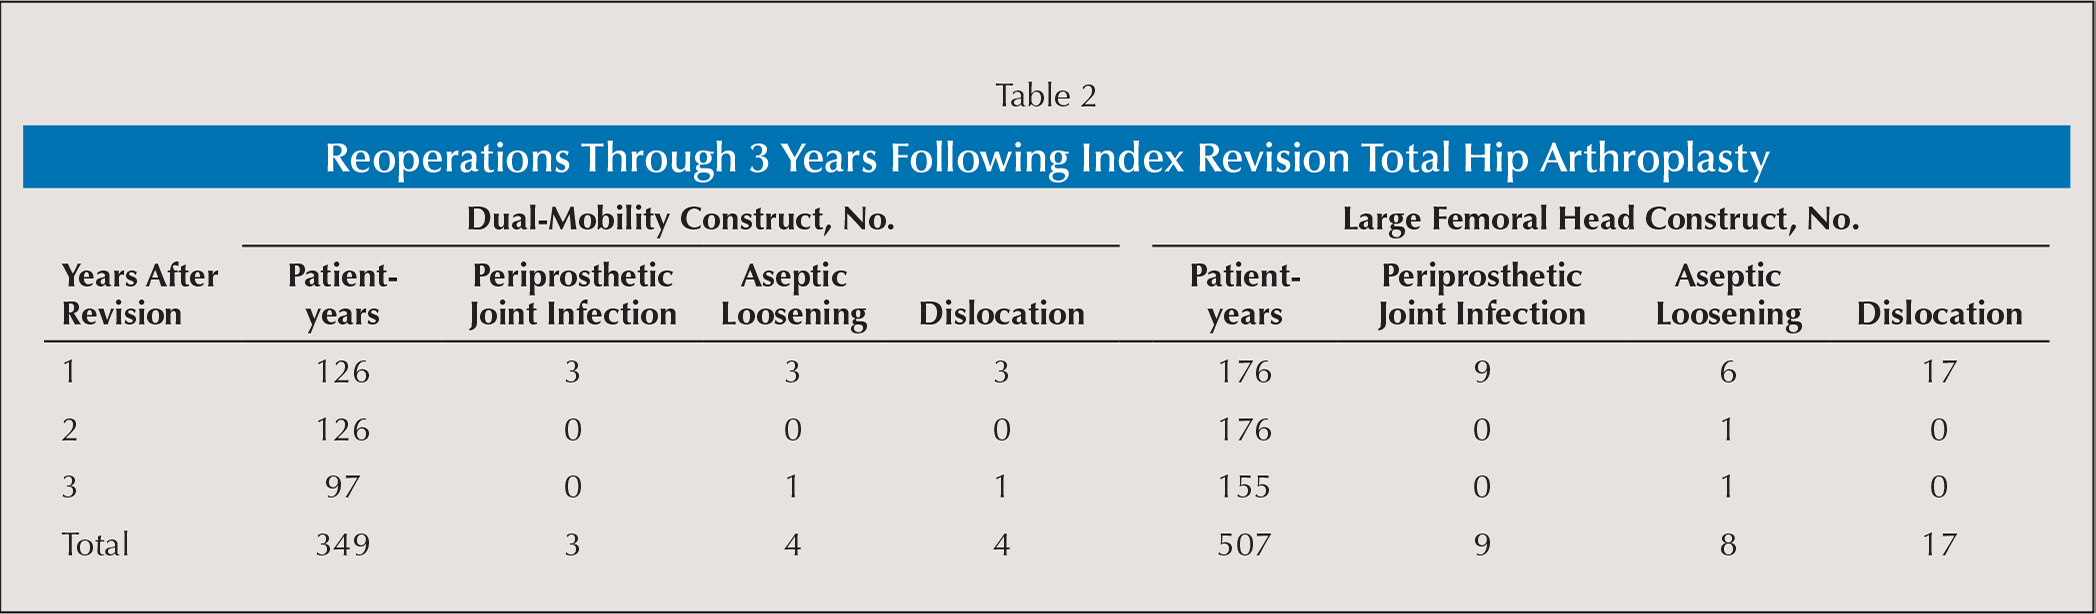 Reoperations Through 3 Years Following Index Revision Total Hip Arthroplasty